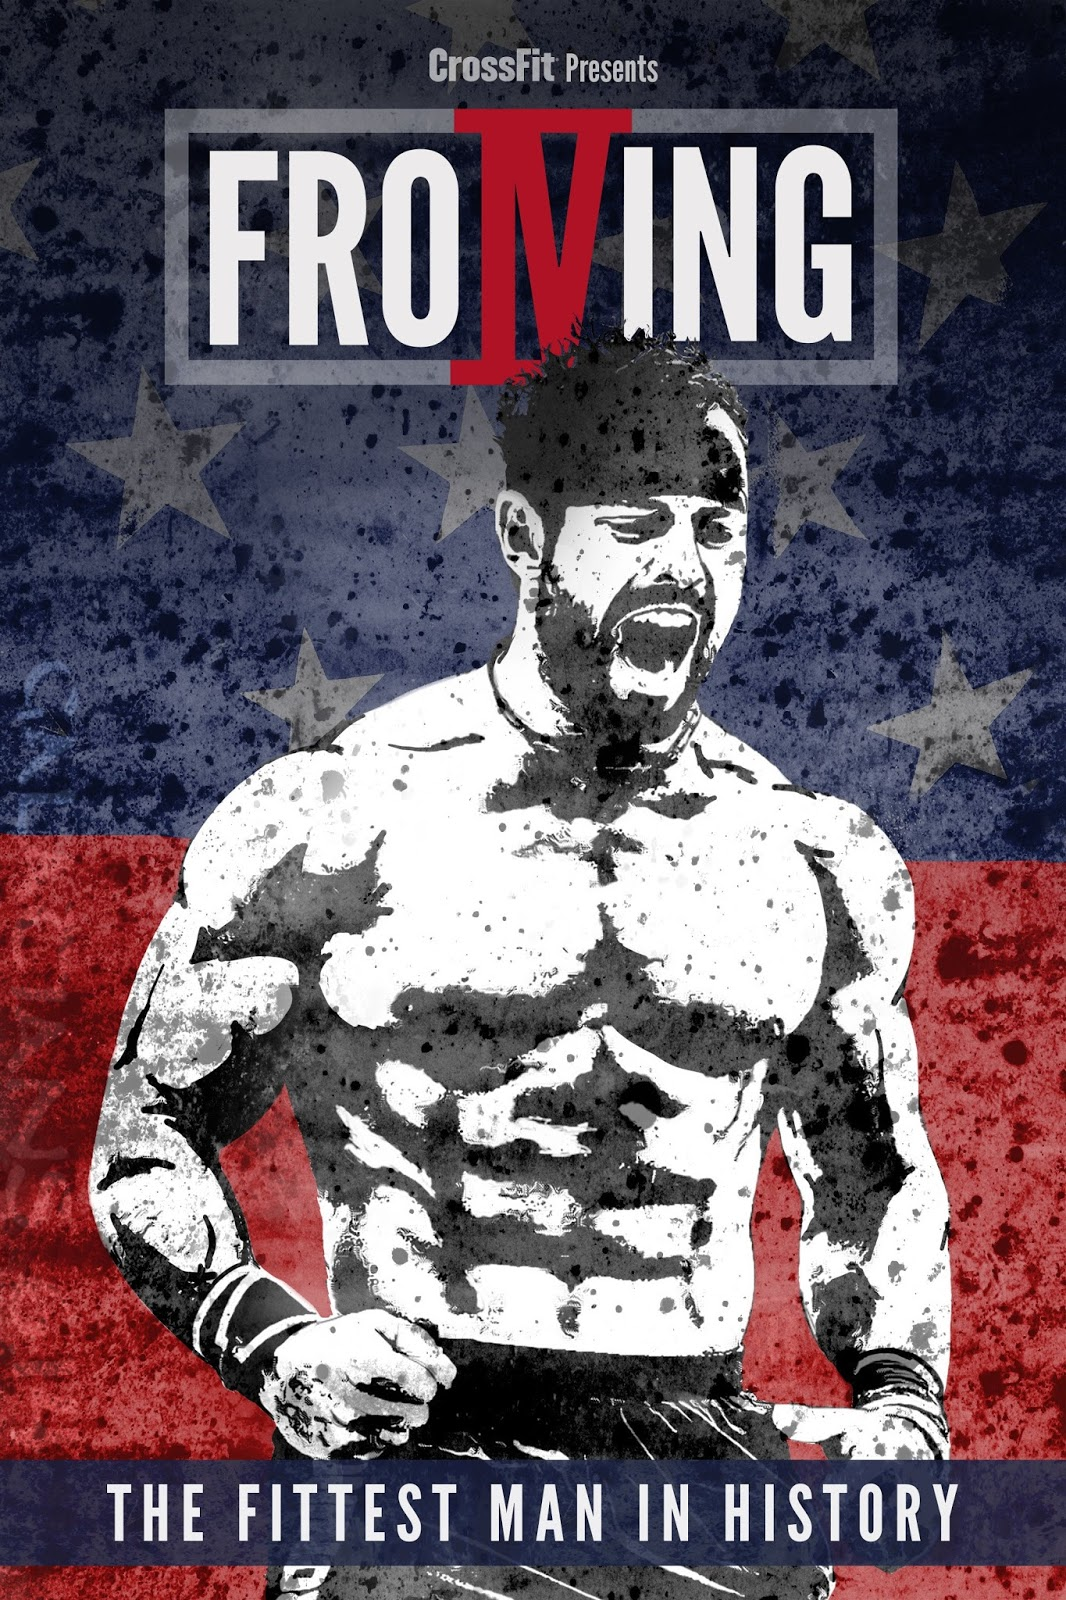 Froning: The Fittest Man In History (2015) ταινιες online seires oipeirates greek subs